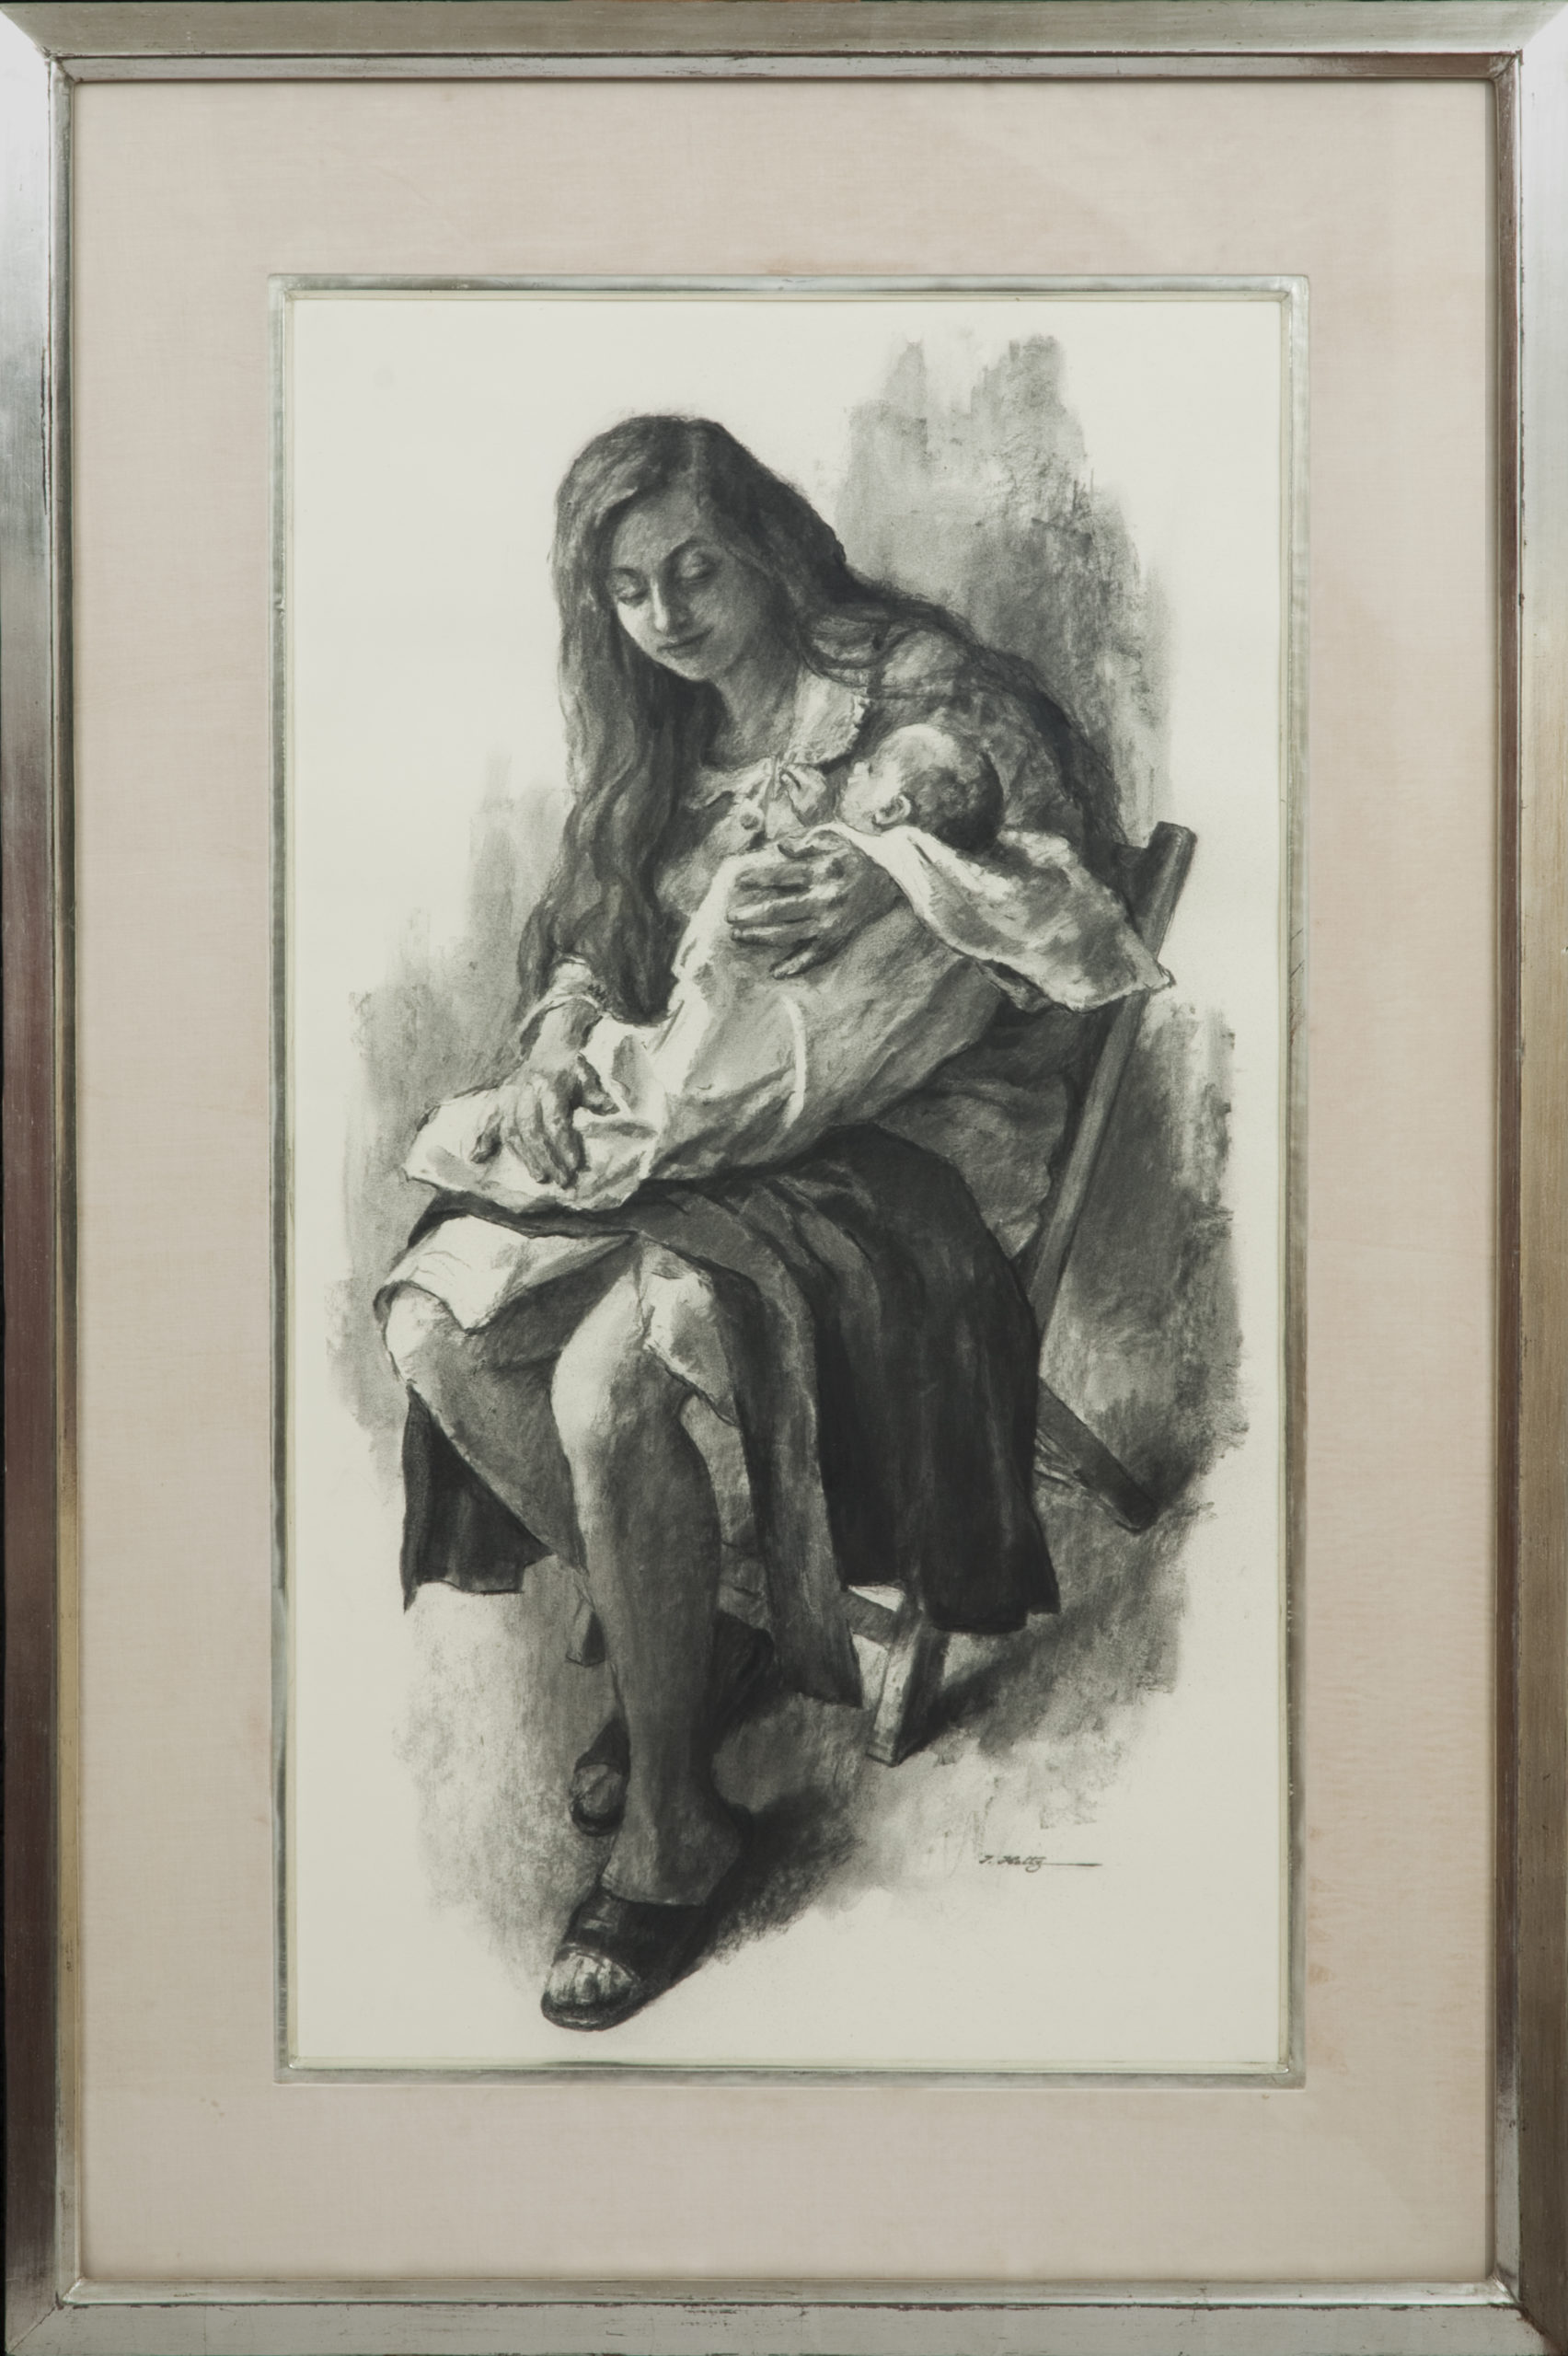 110 Mothers Joy 1971 - Charcoal - 15 x 27 - Frame: 24 x 36 x 2